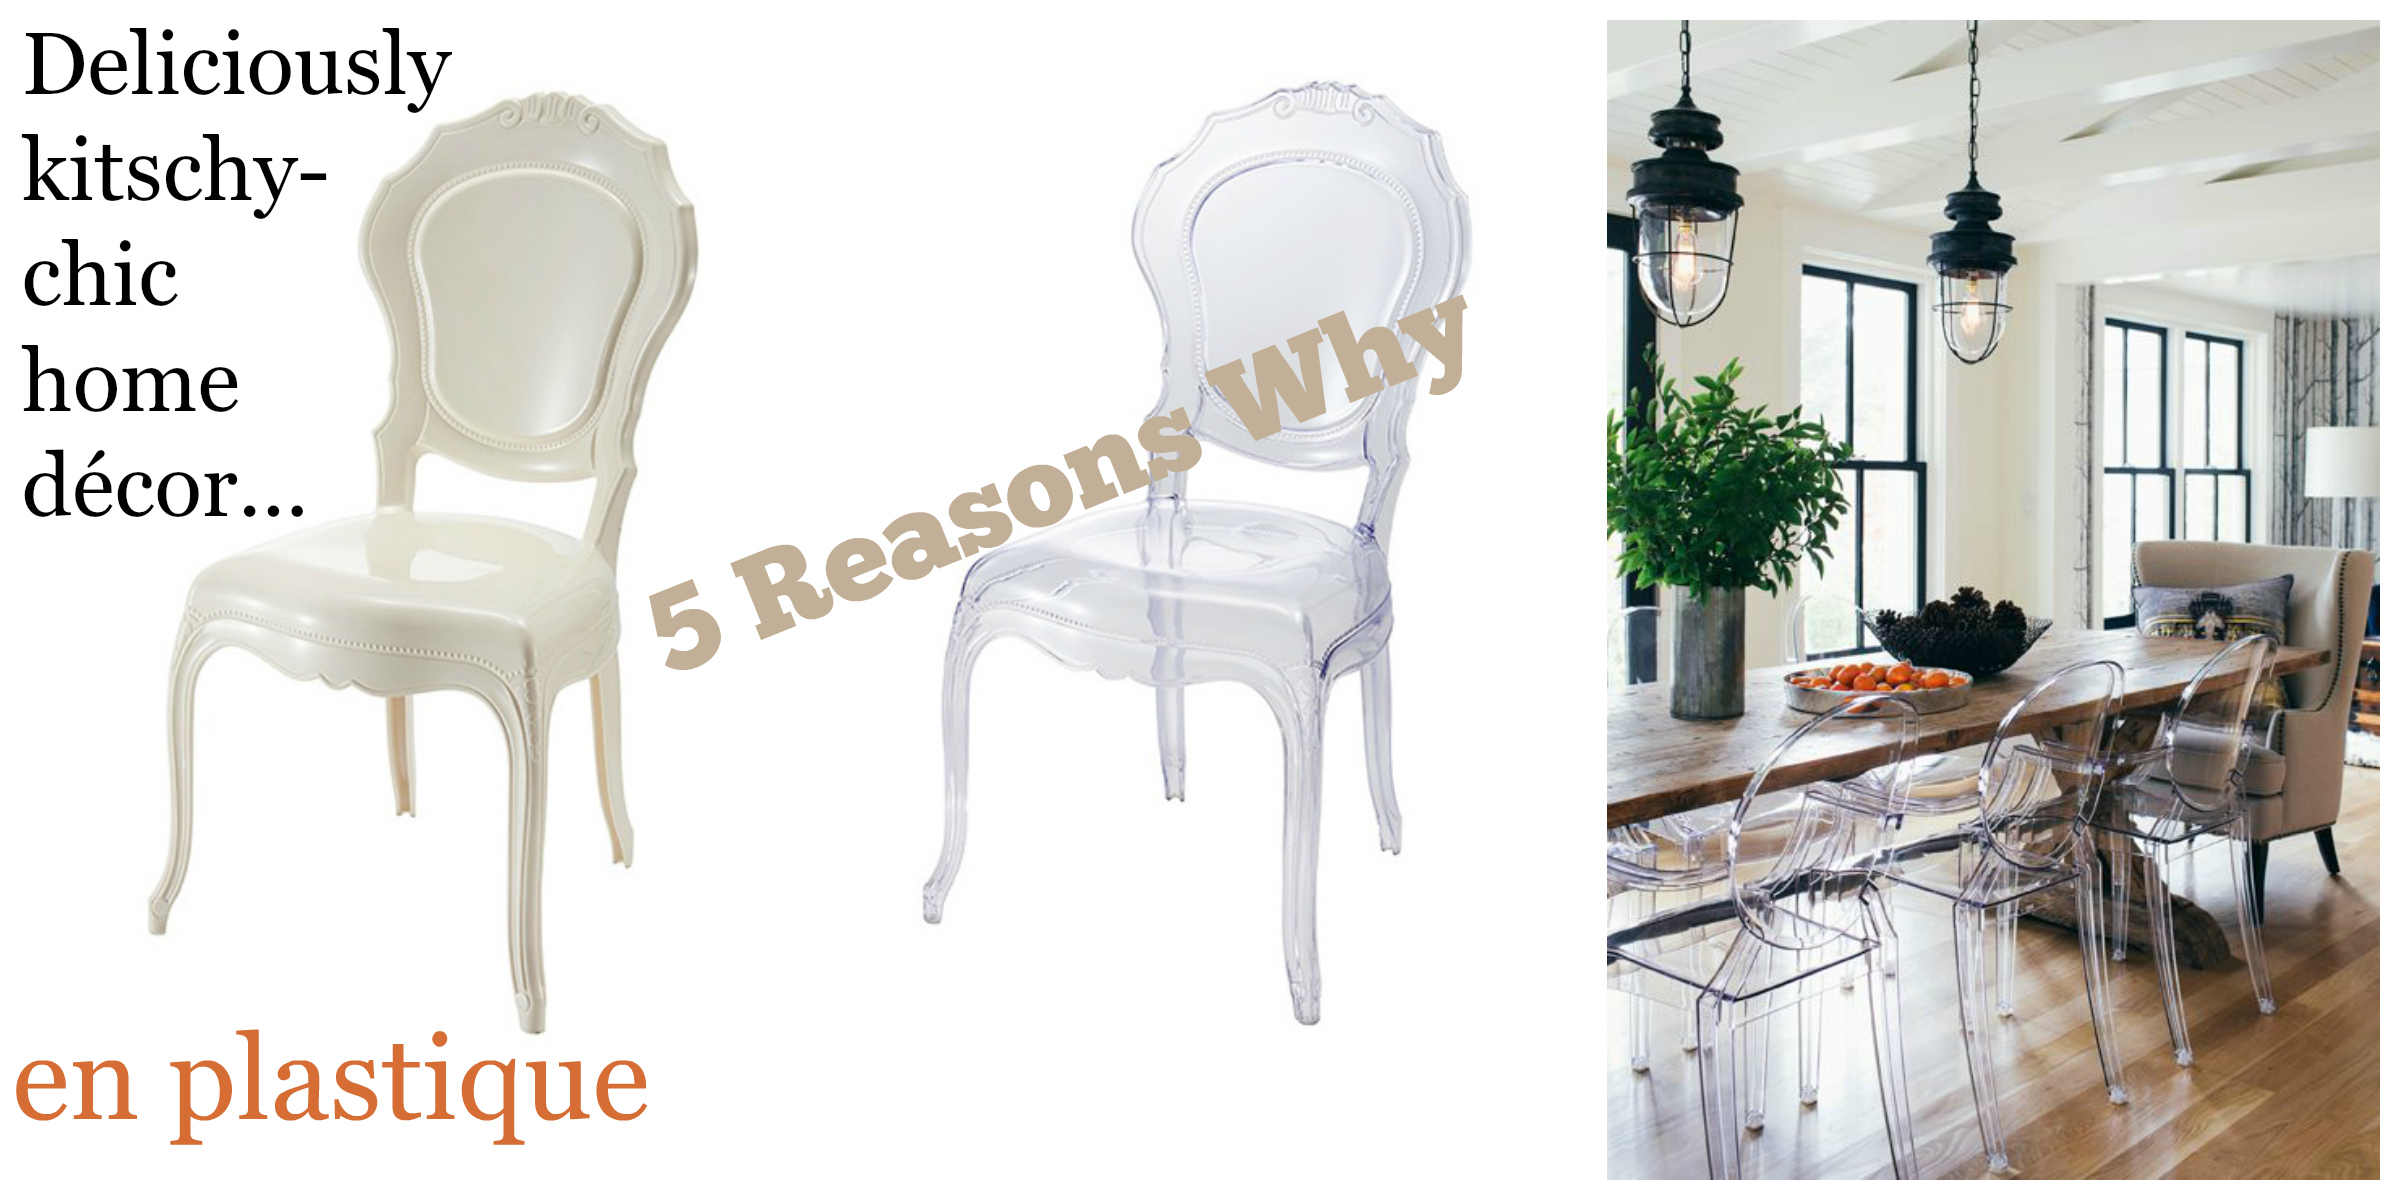 metal dining chairs johannesburg cotton chair covers to buy 5 reasons why plastic is the new chic room tassels are chick as explained by an interior decorator